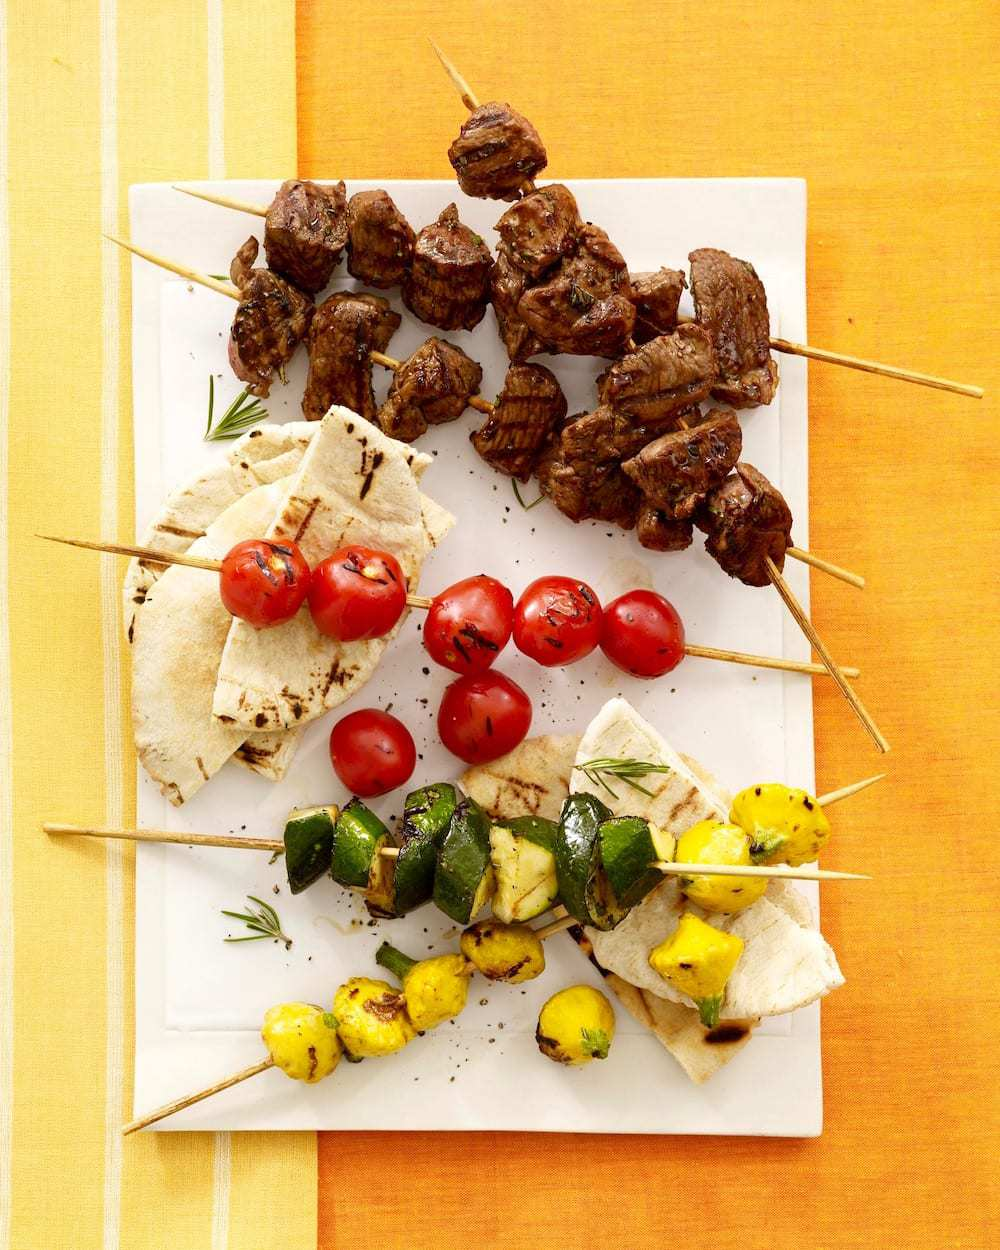 Lemon Herb Lamb And Vegetable Kabobs on white platter